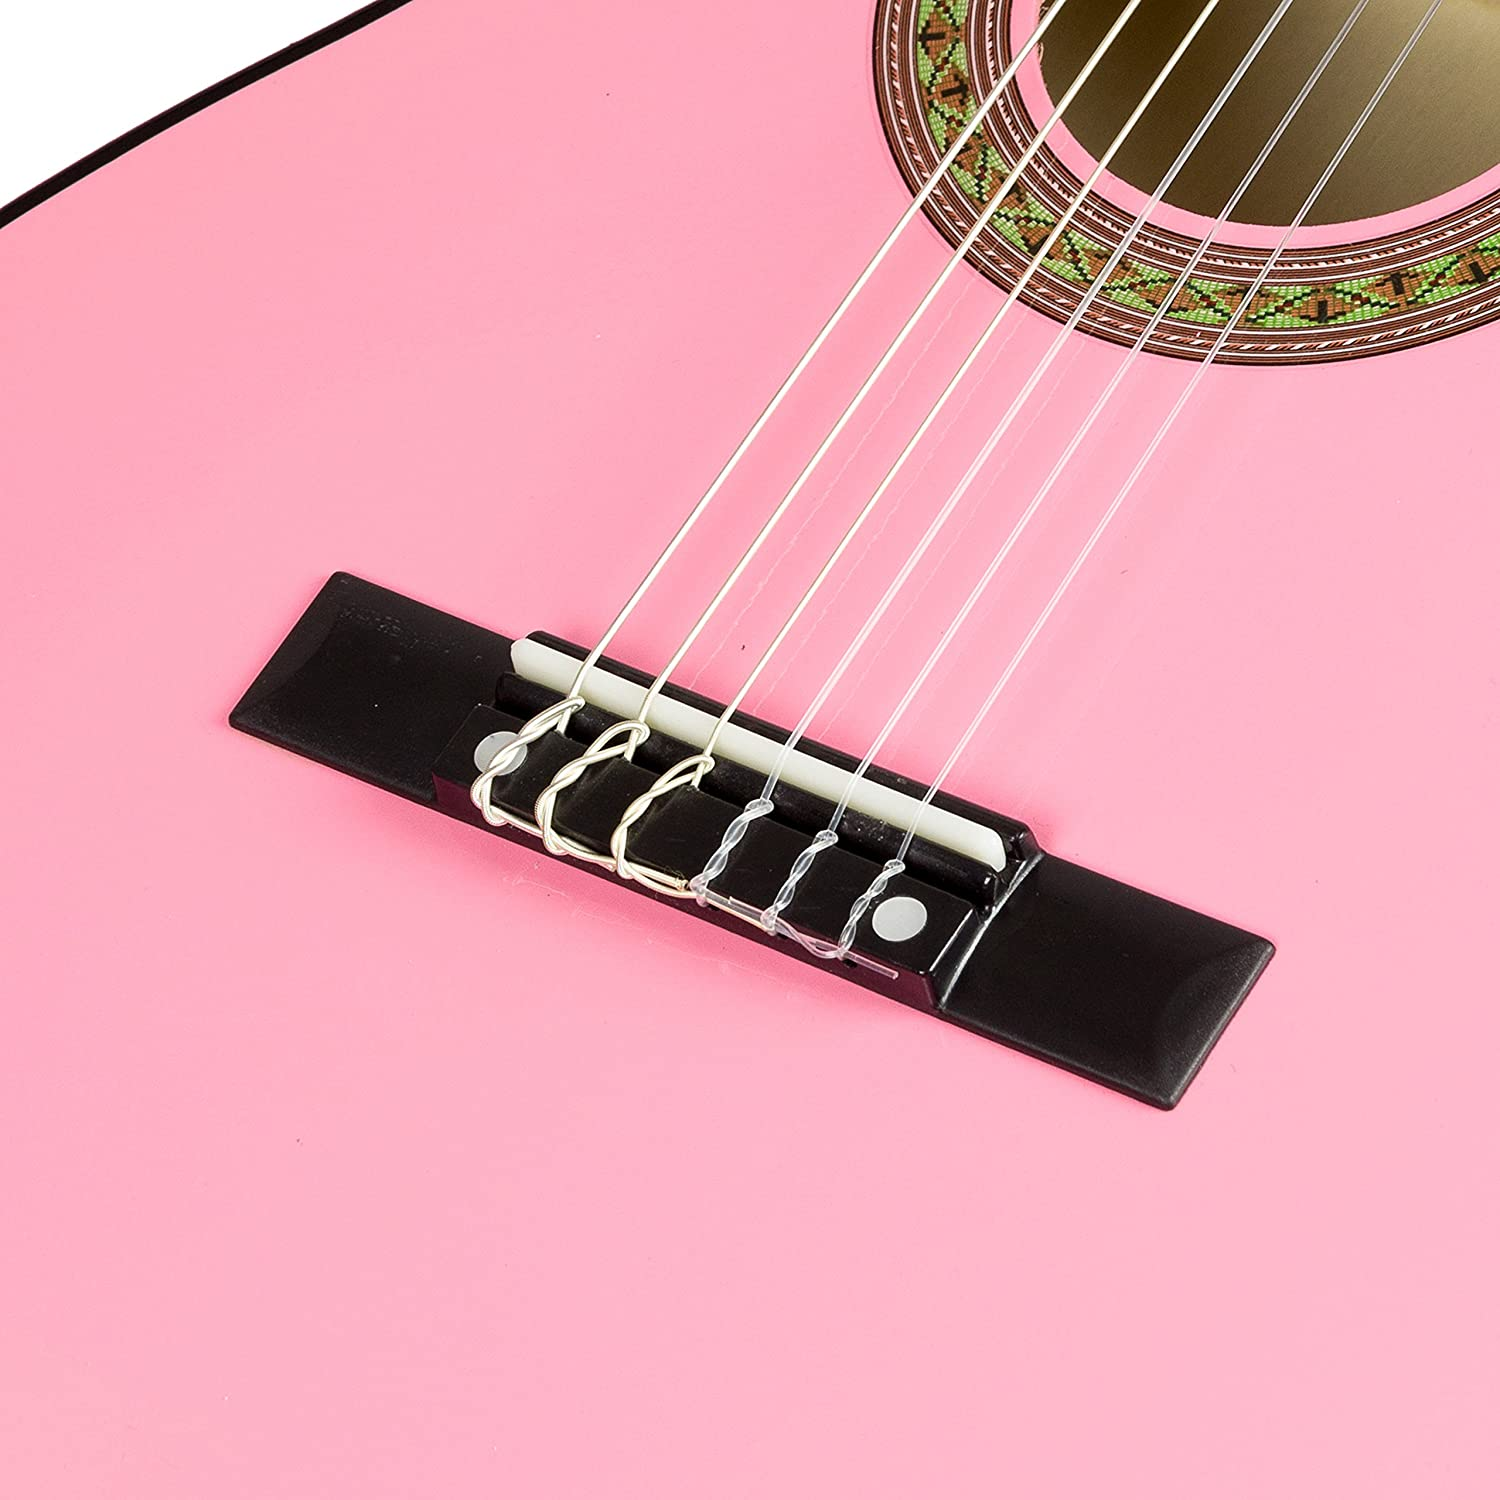 Amazon.com: Music Alley MA-34-PNK Acoustic Guitar Pack, Pink ...